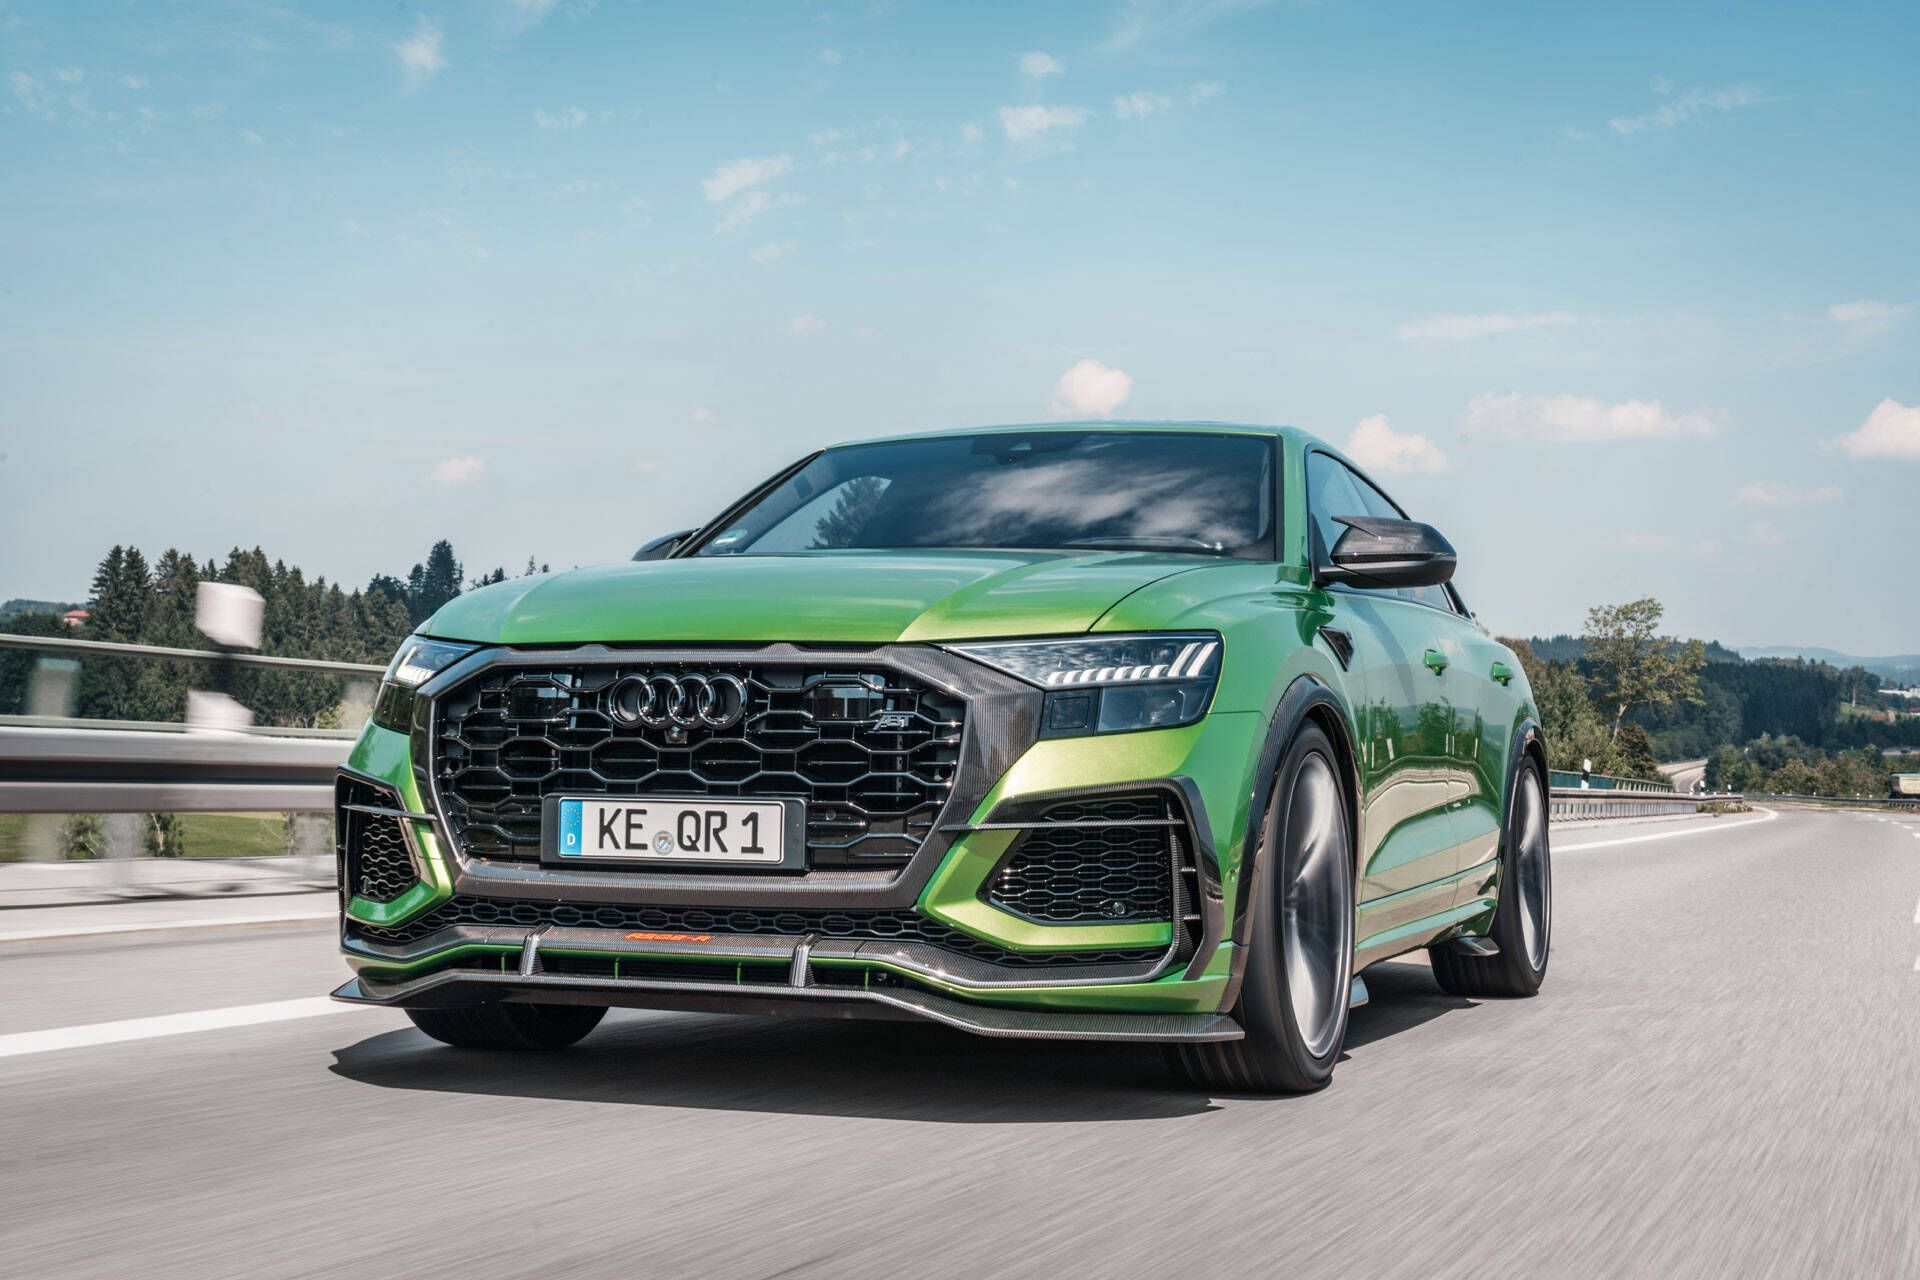 2020 Audi Rsq8 R By Abt Top Speed In 2020 Audi Audi Rs Audi Rs8